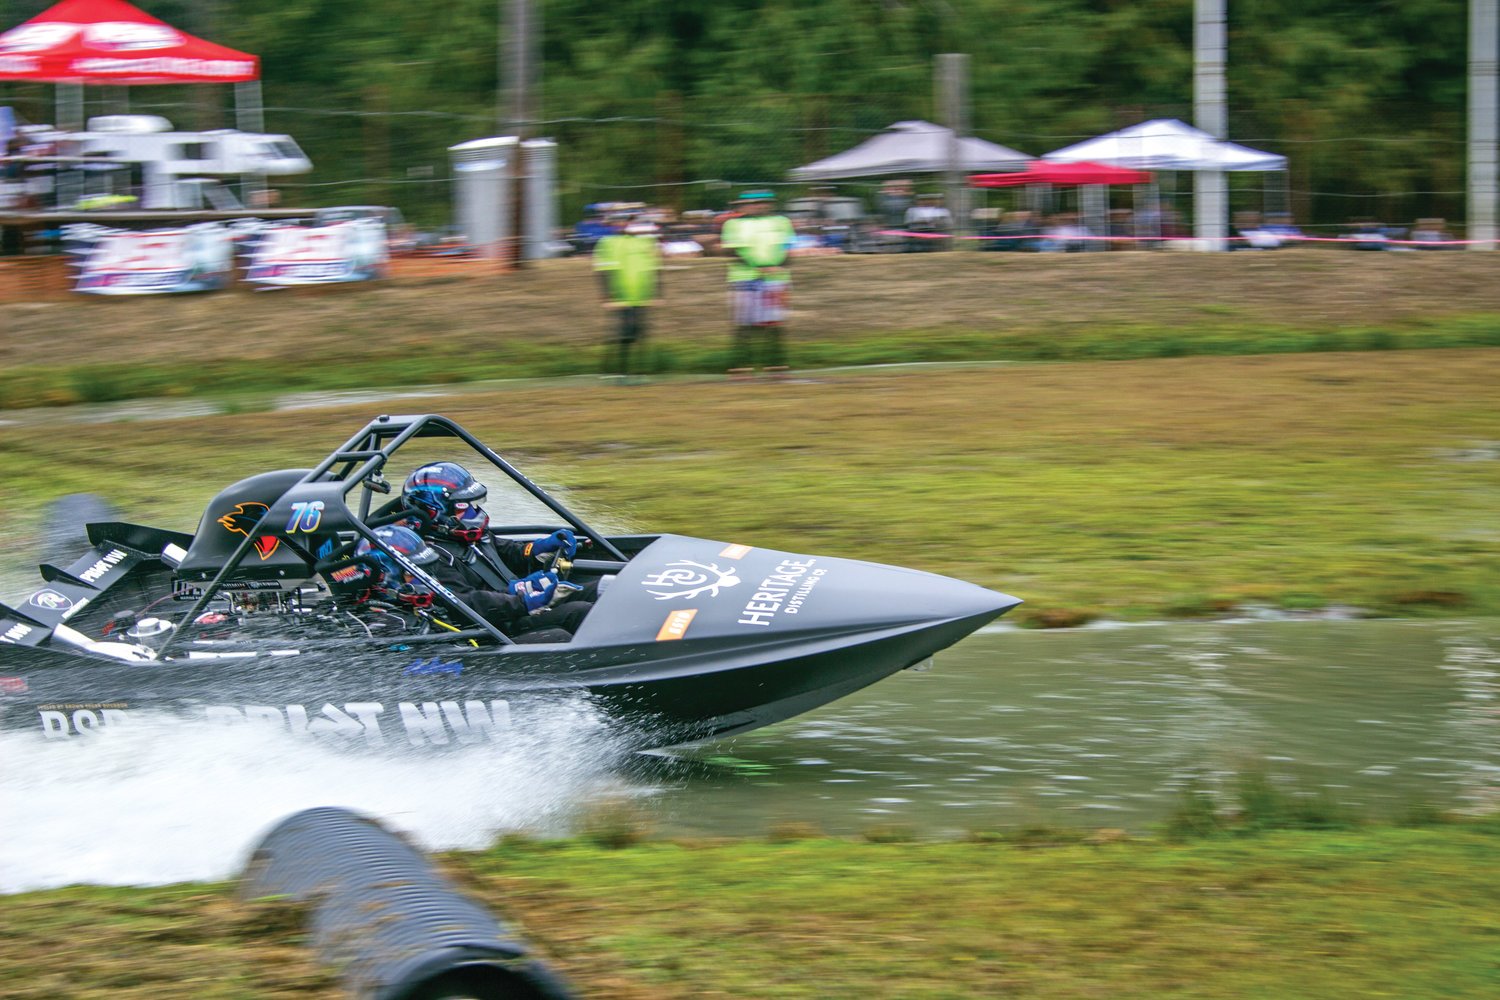 The Print Northwest Boat accelerates quickly out of its starting gate during the races Sept. 7 at Extreme Sports Park Port Angeles.